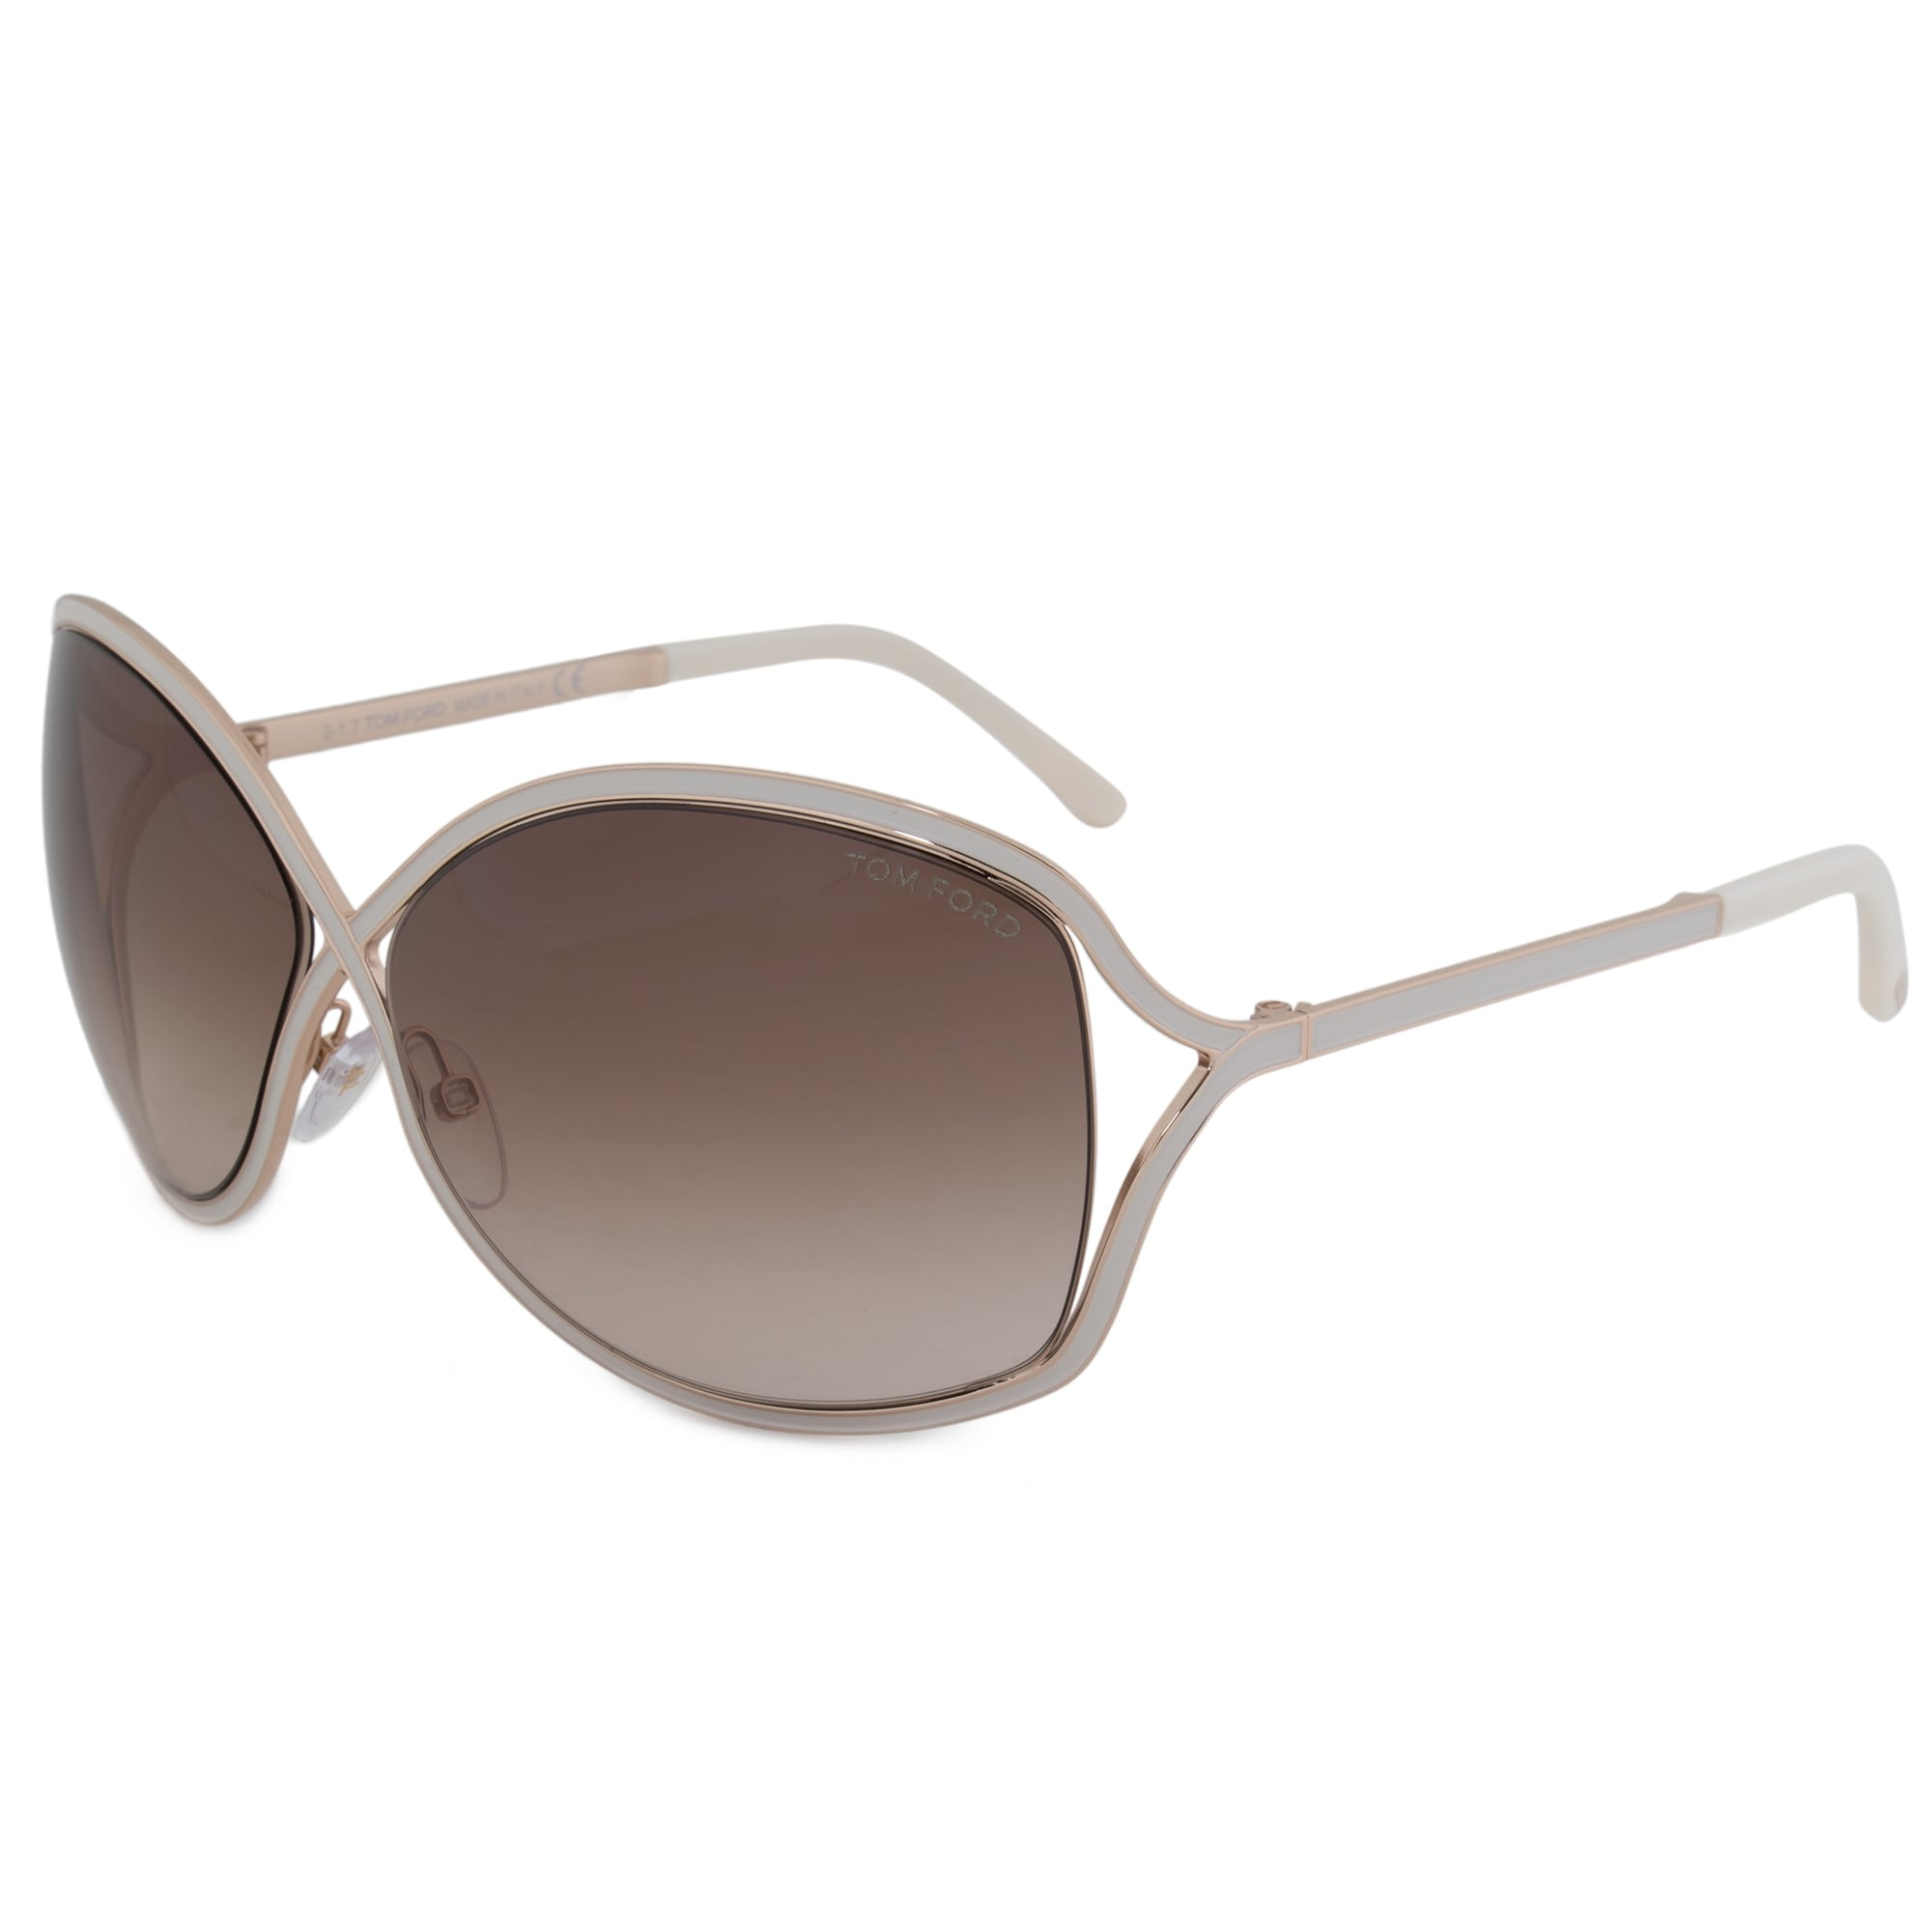 00e807230ad06 Shop Tom Ford Rickie Oval Sunglasses FT0179 28G 64 - Free Shipping Today -  Overstock - 19622673